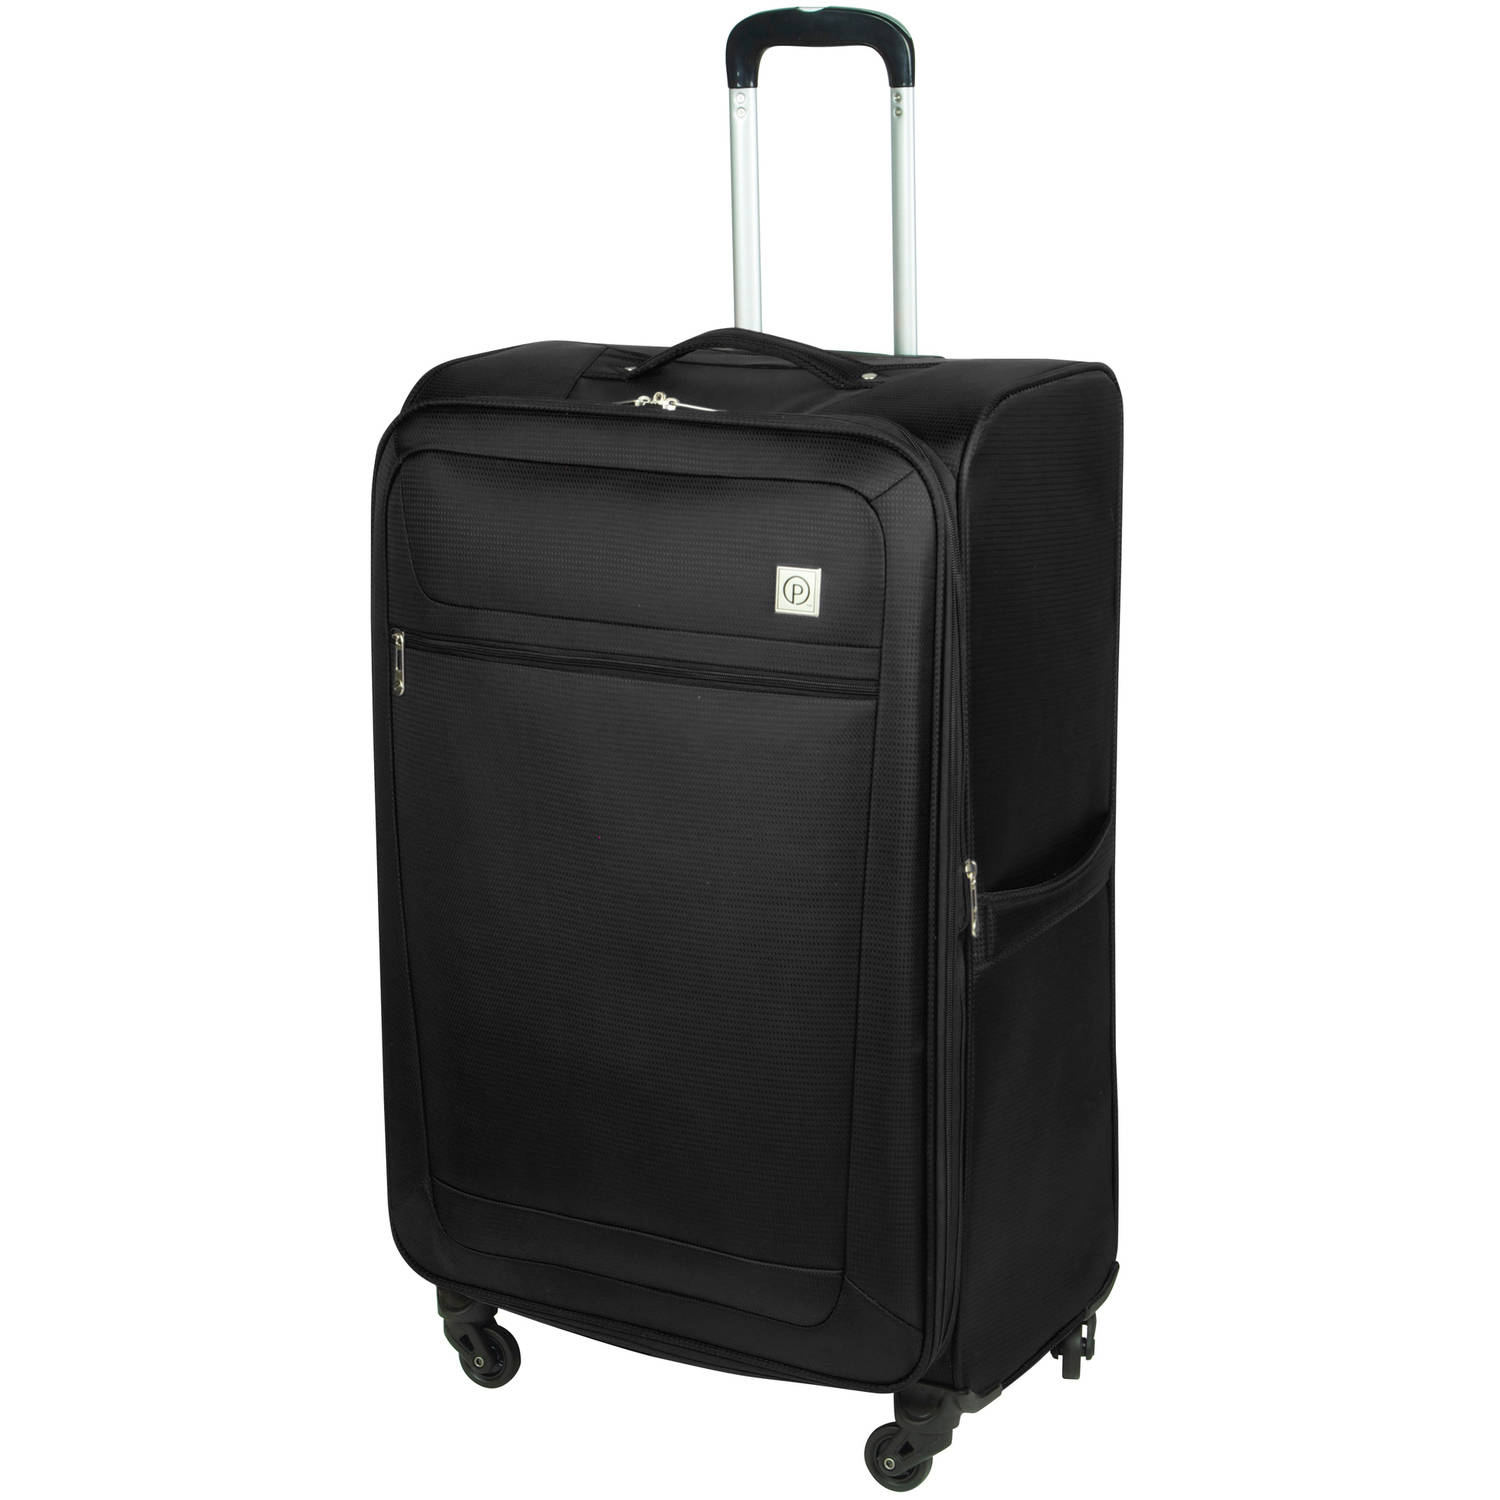 Lightweight Luggage - Walmart.com